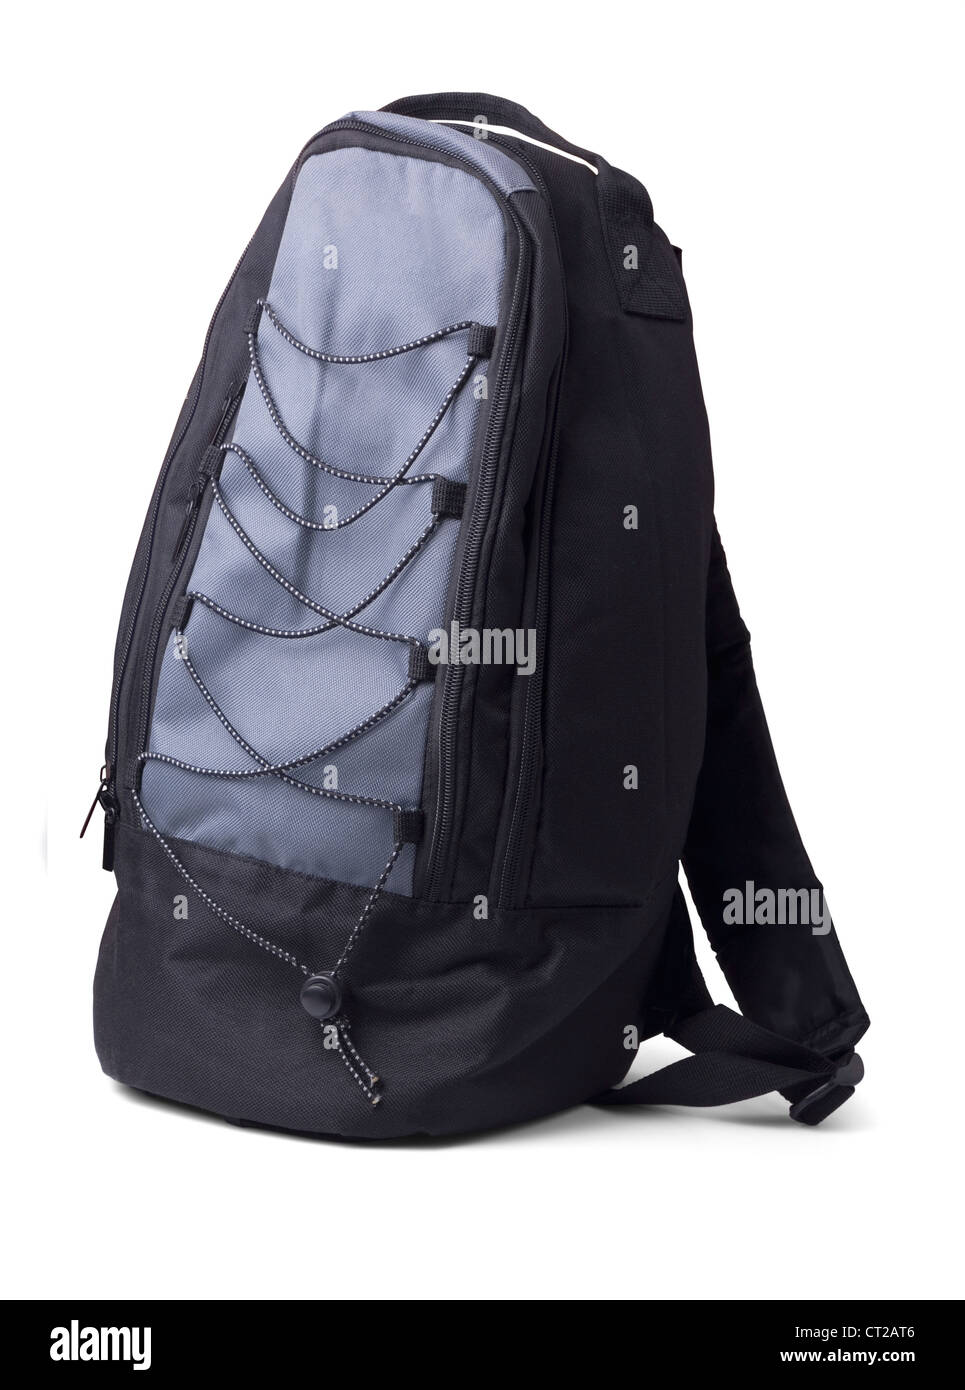 Backpack isolated on white - Stock Image